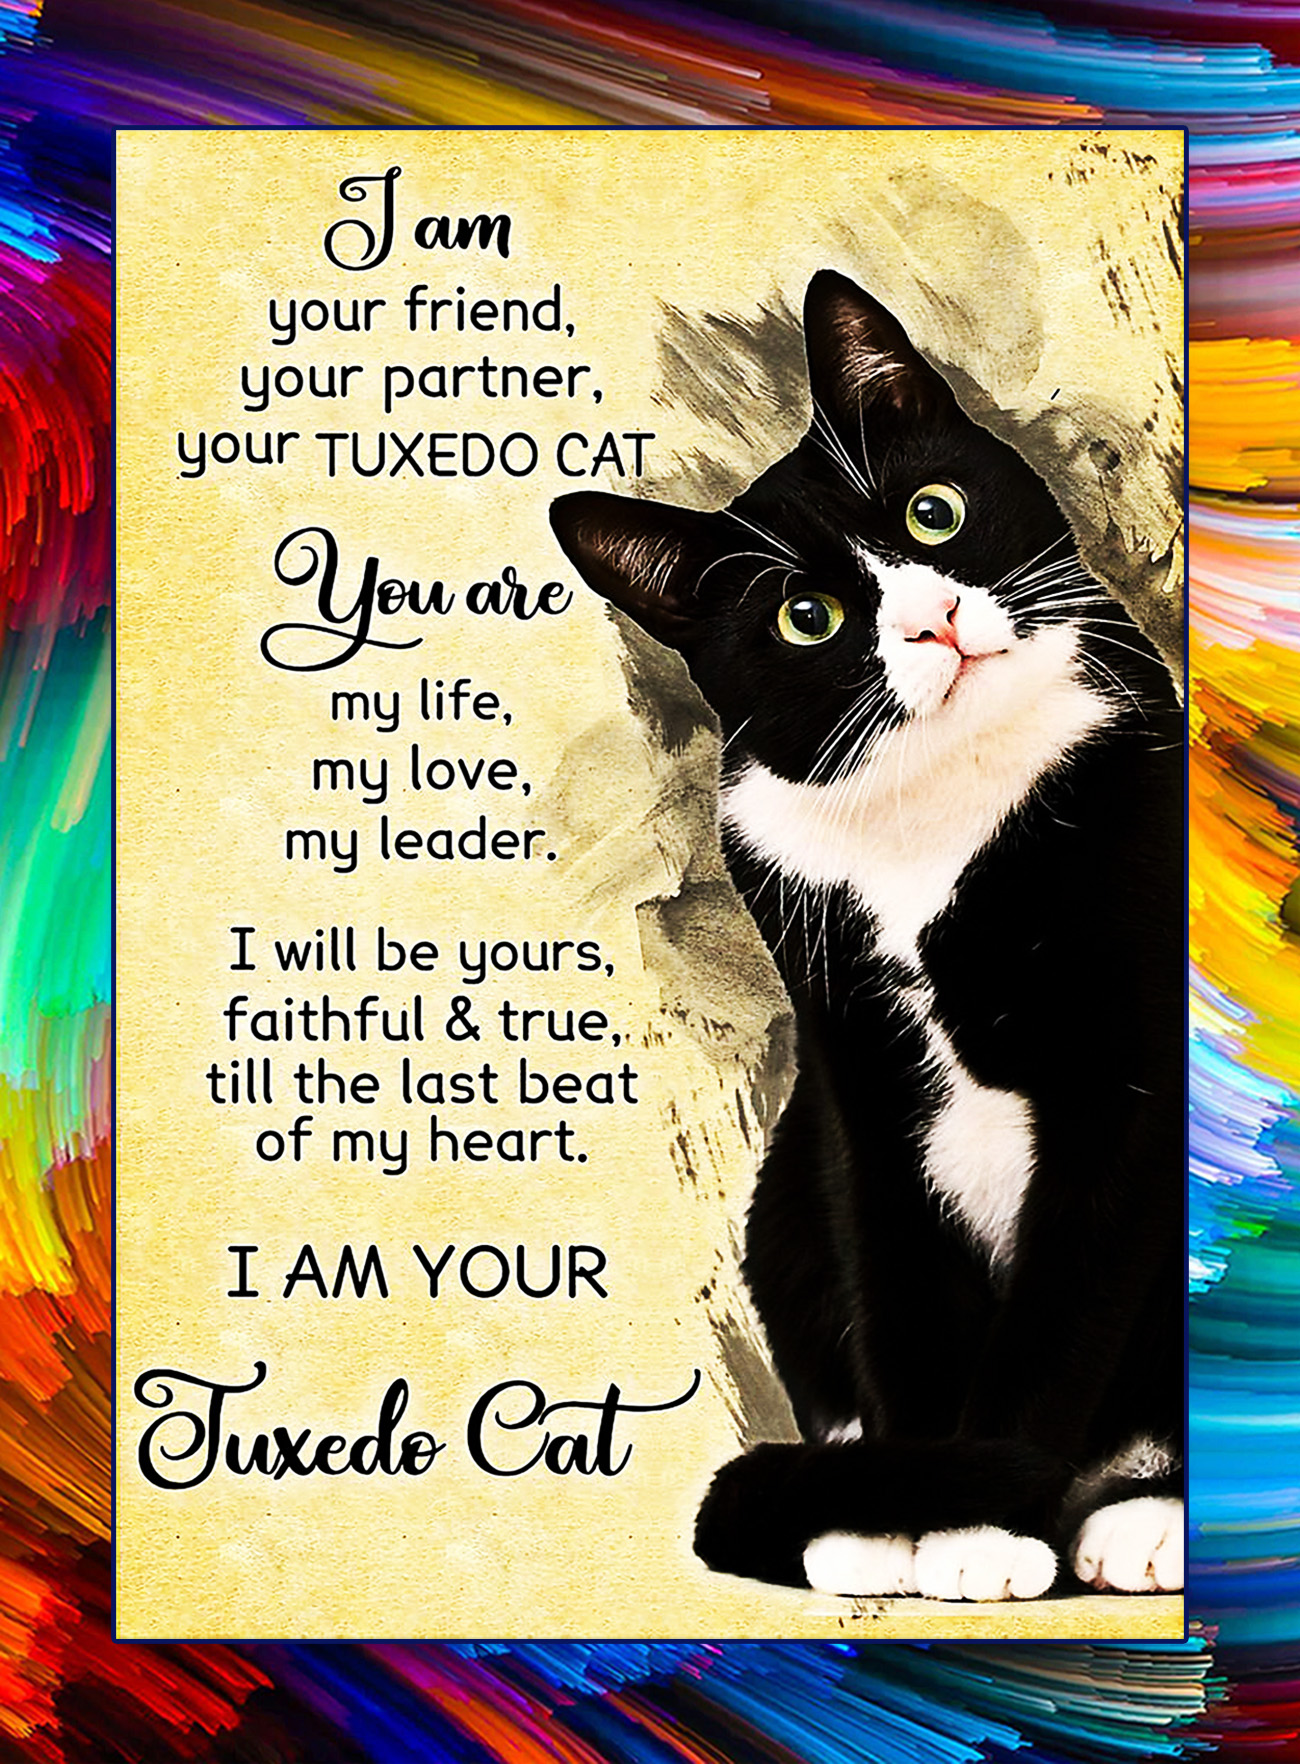 I am your friend tuxedo cat poster - A1